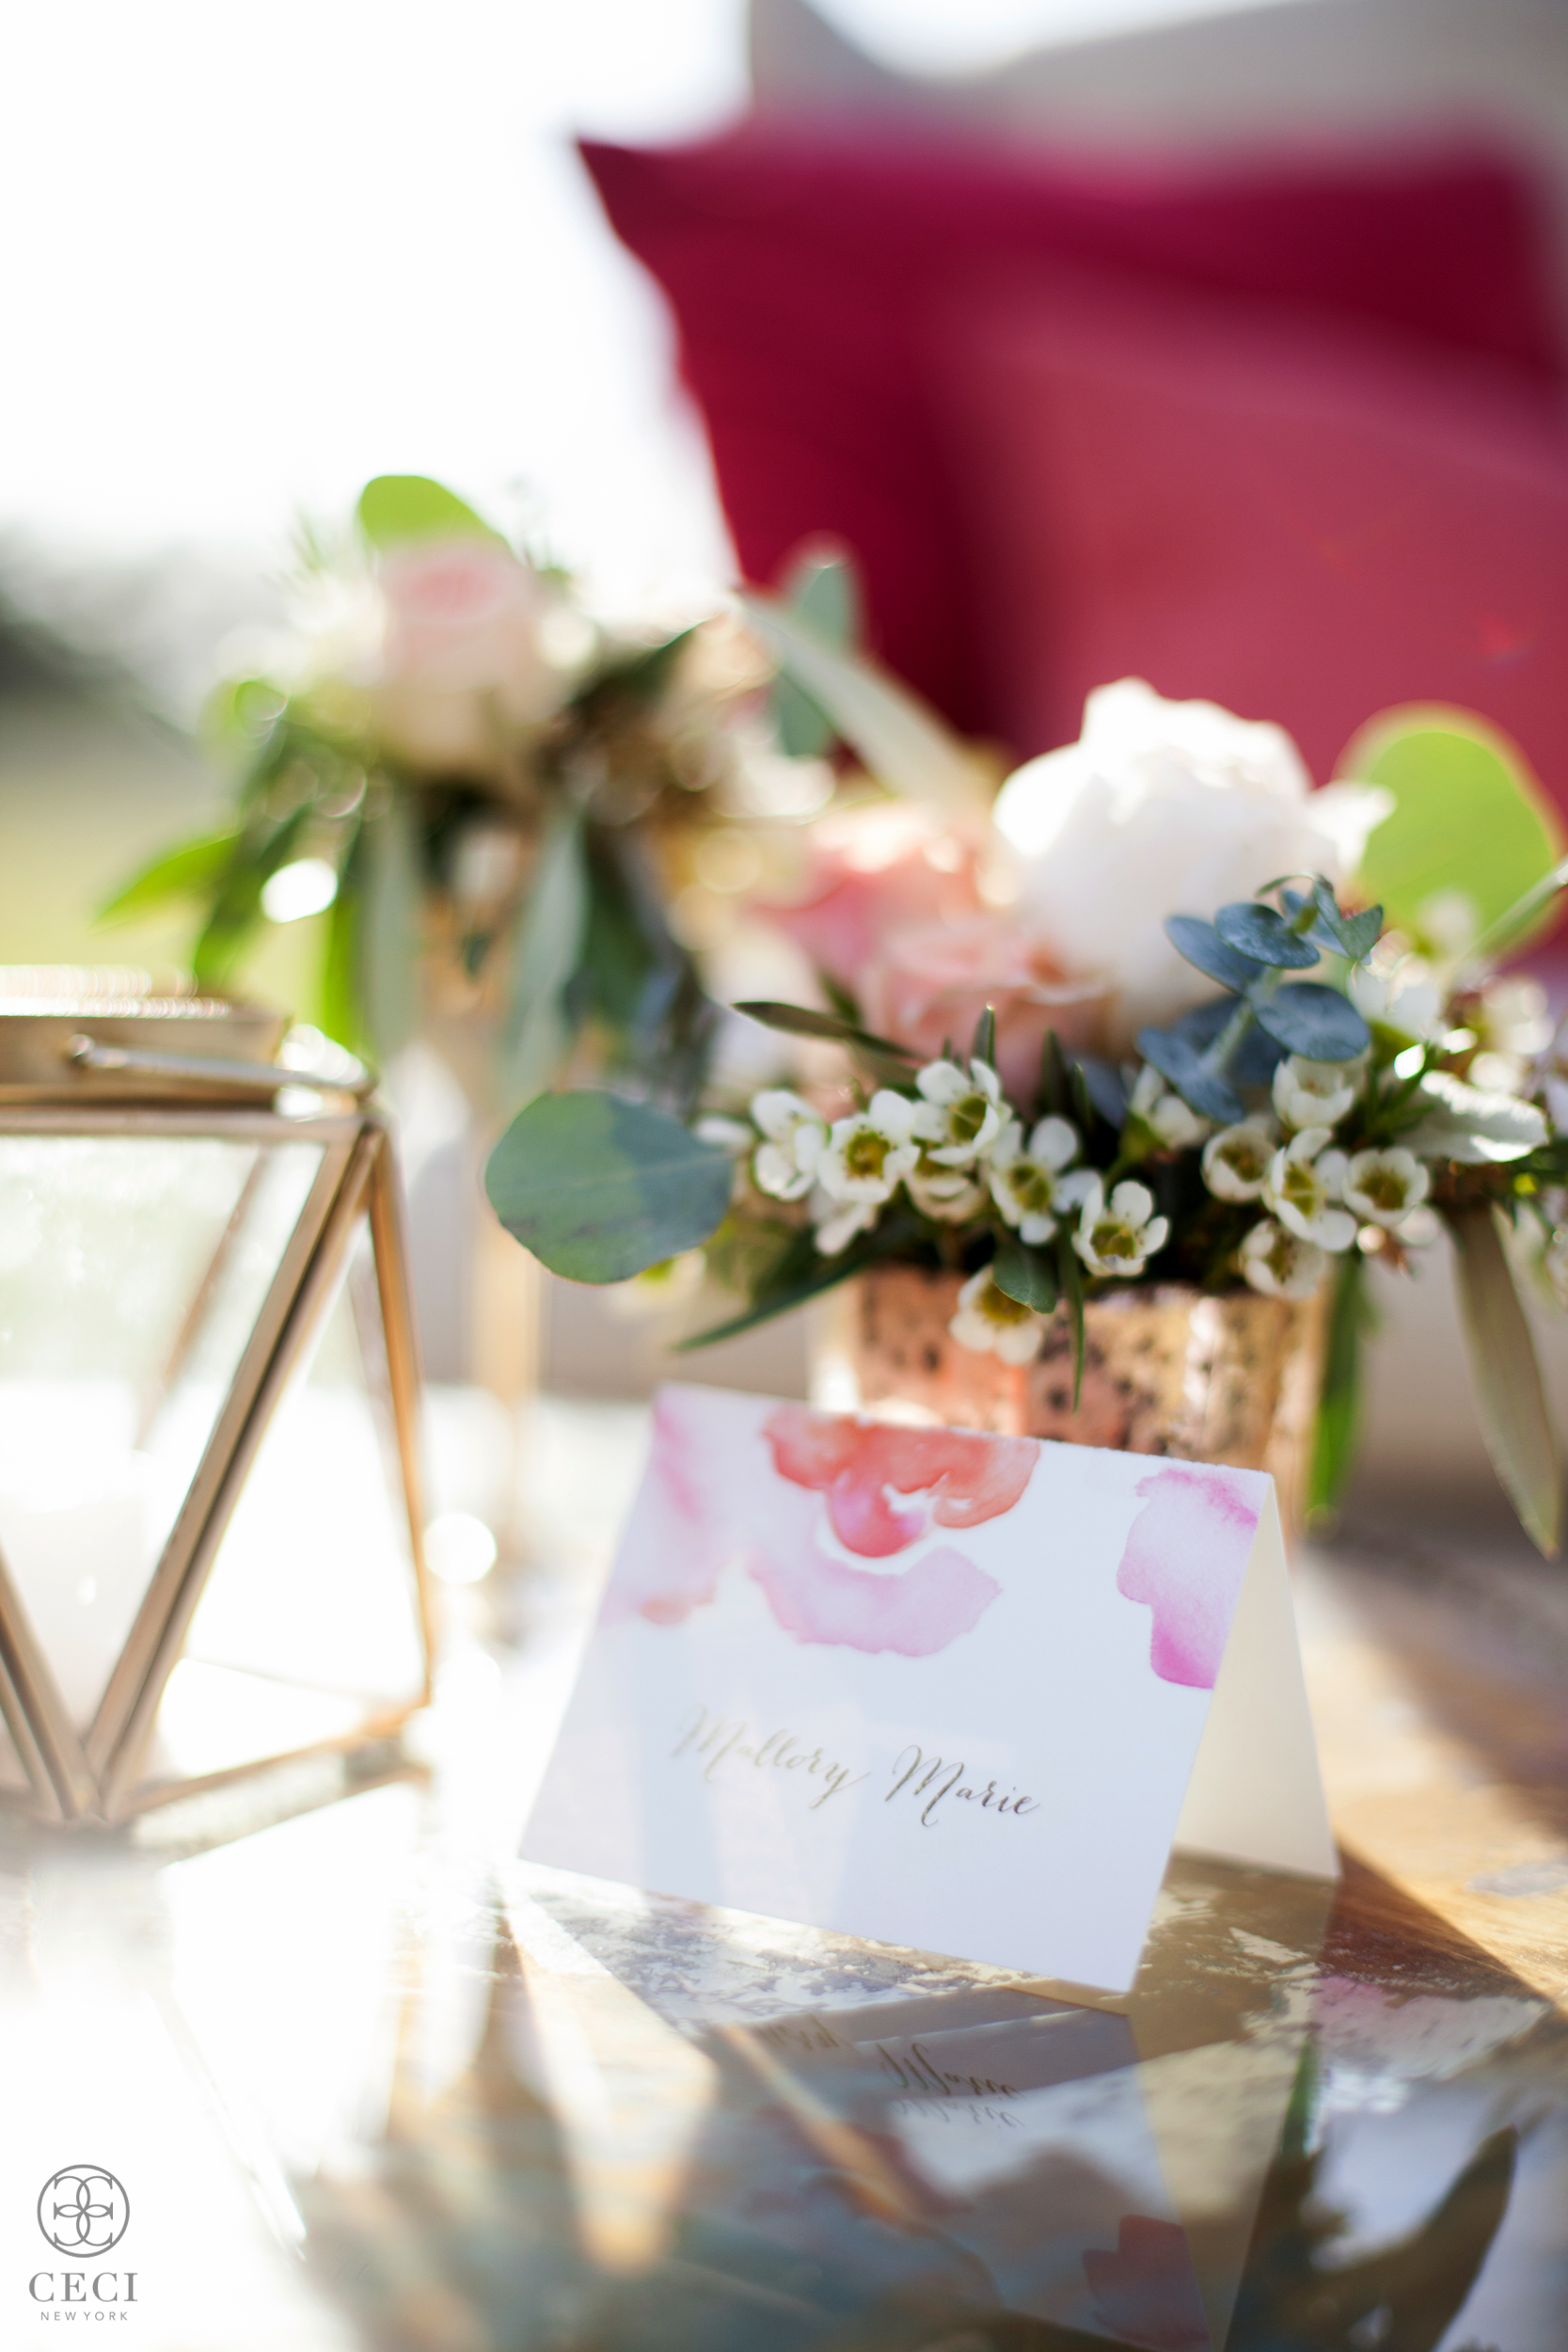 Ceci_New_York_Ceci_Style_Ceci_Johnson_Luxury_Lifestyle_Wedding_Floral_Sara_Kauss_Lucky_Sun_Ranch_Watercolor_Hand_Painted_Inspiration_Design_Custom_Couture_Personalized_Invitations_-3.jpg